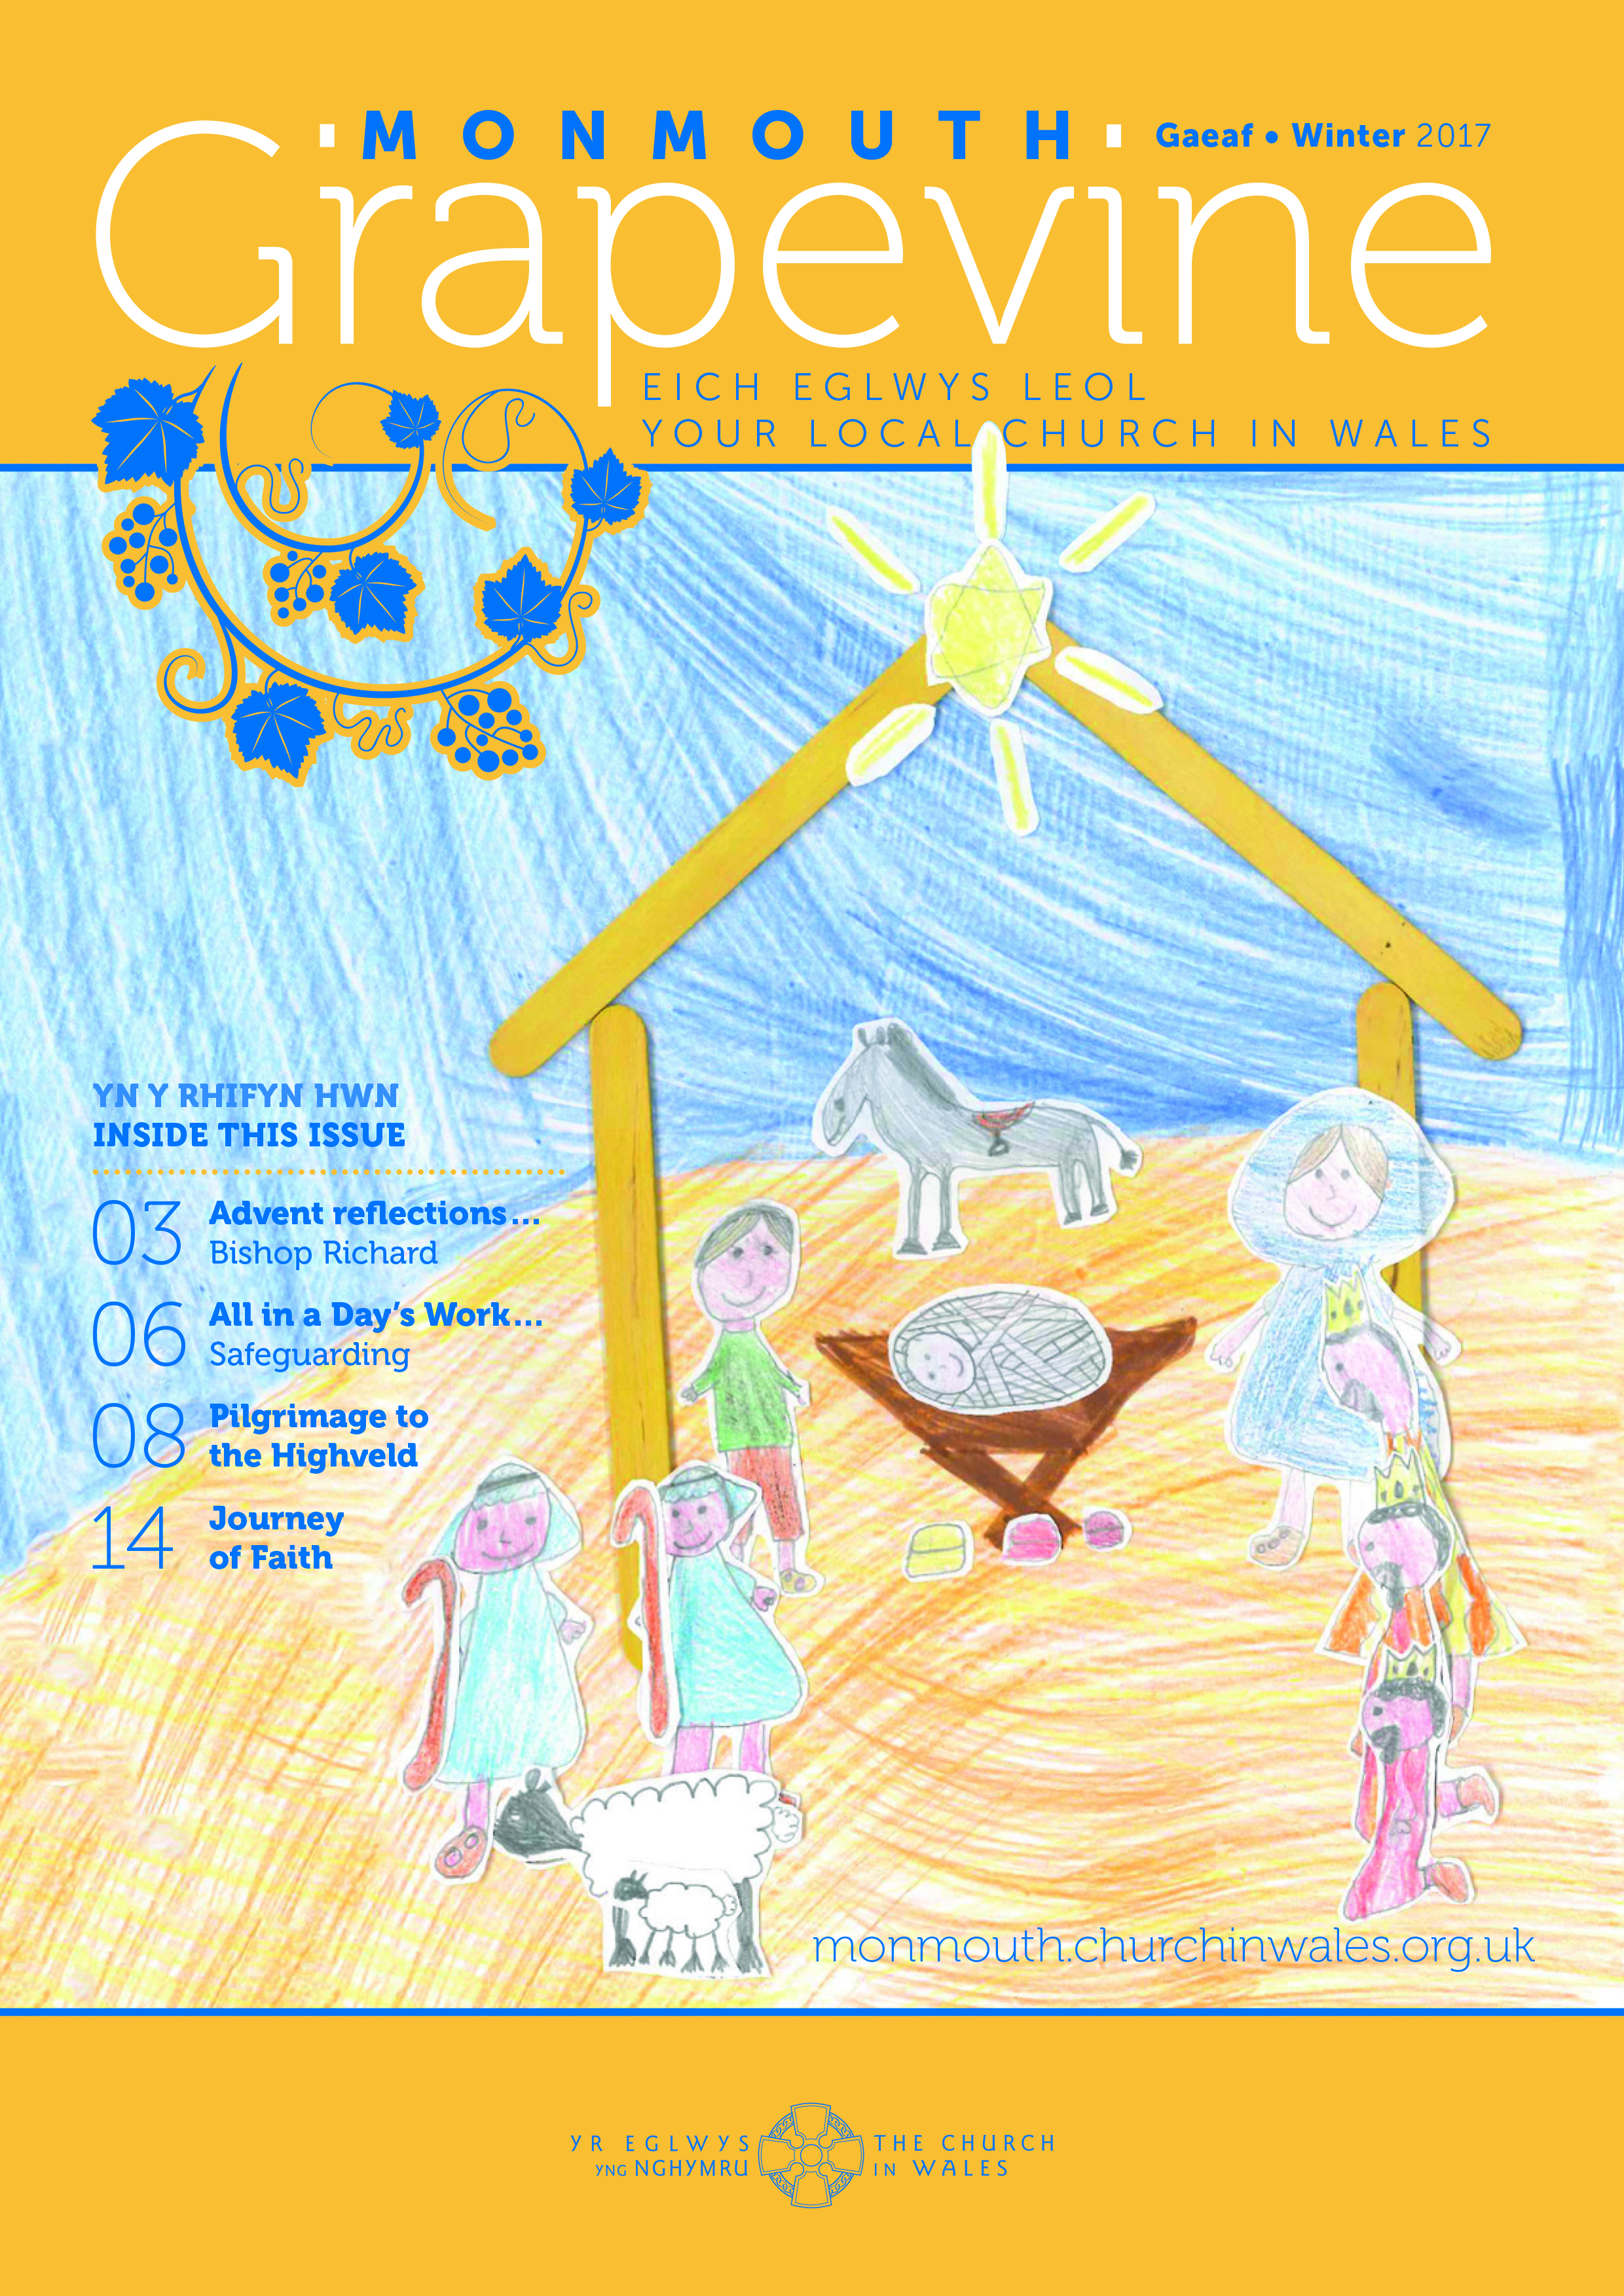 Latest edition of Grapevine out now – Merry Christmas! - The Diocese ...